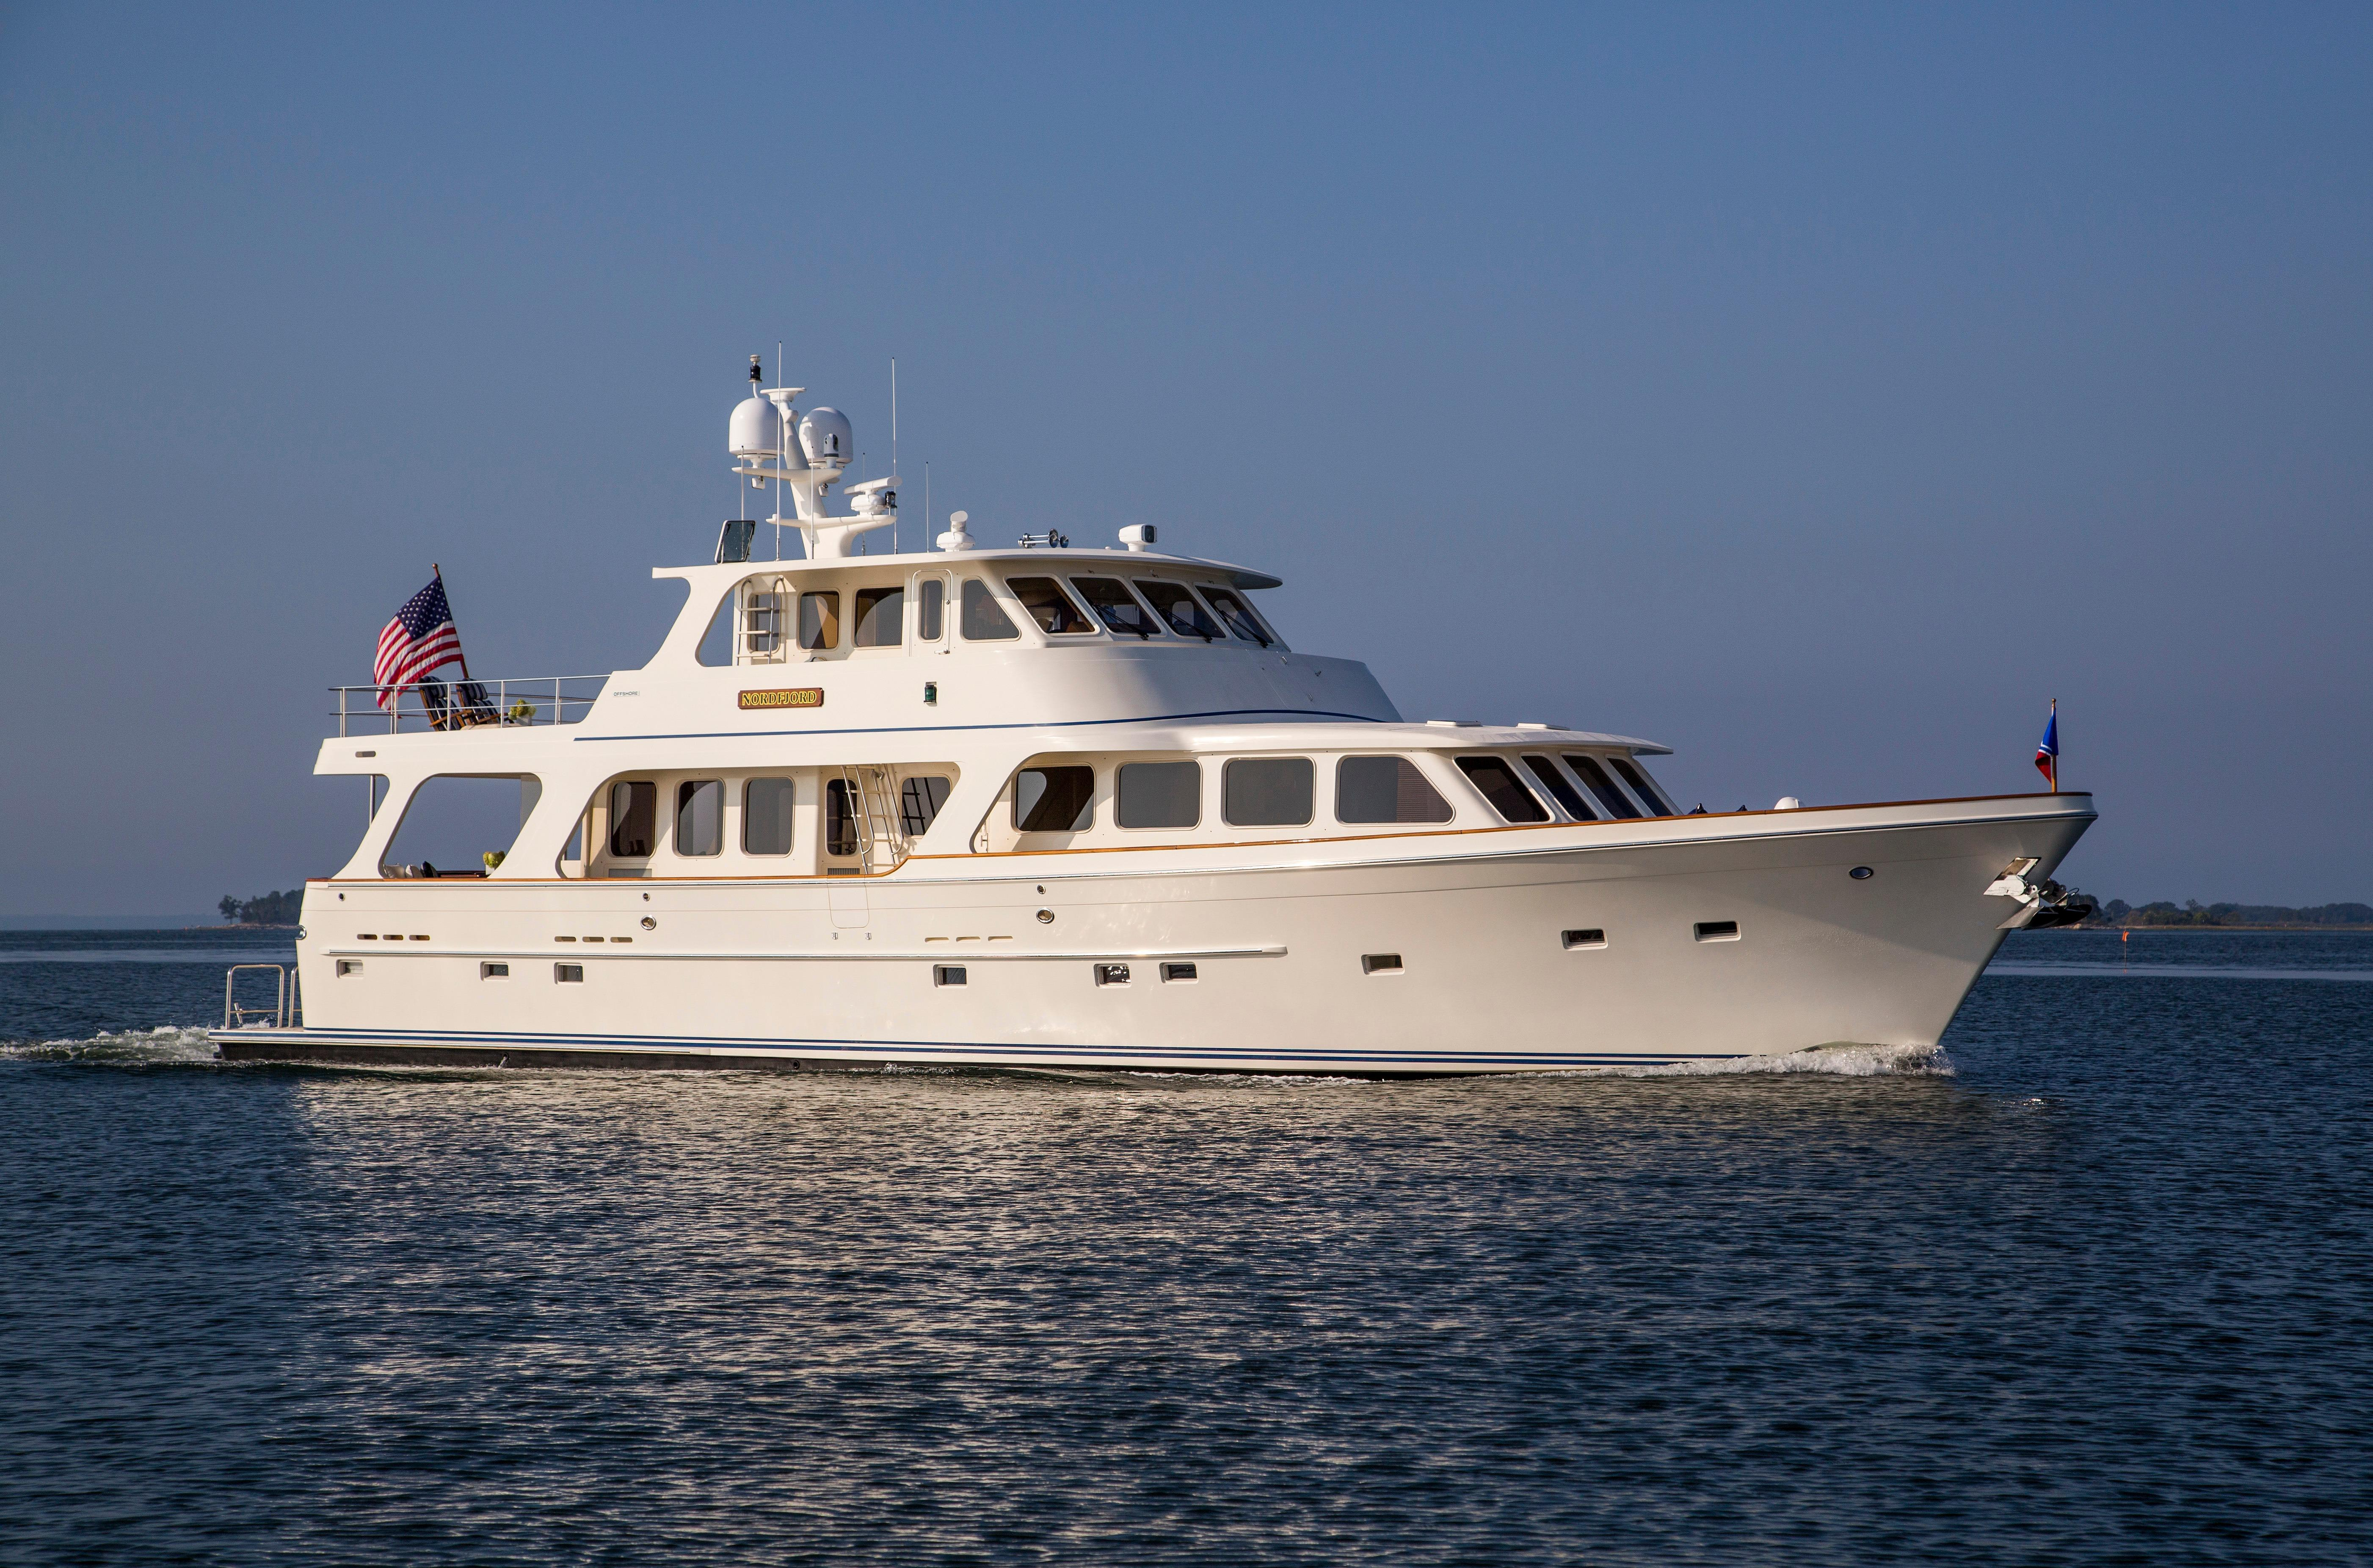 2003 Offshore Voyager